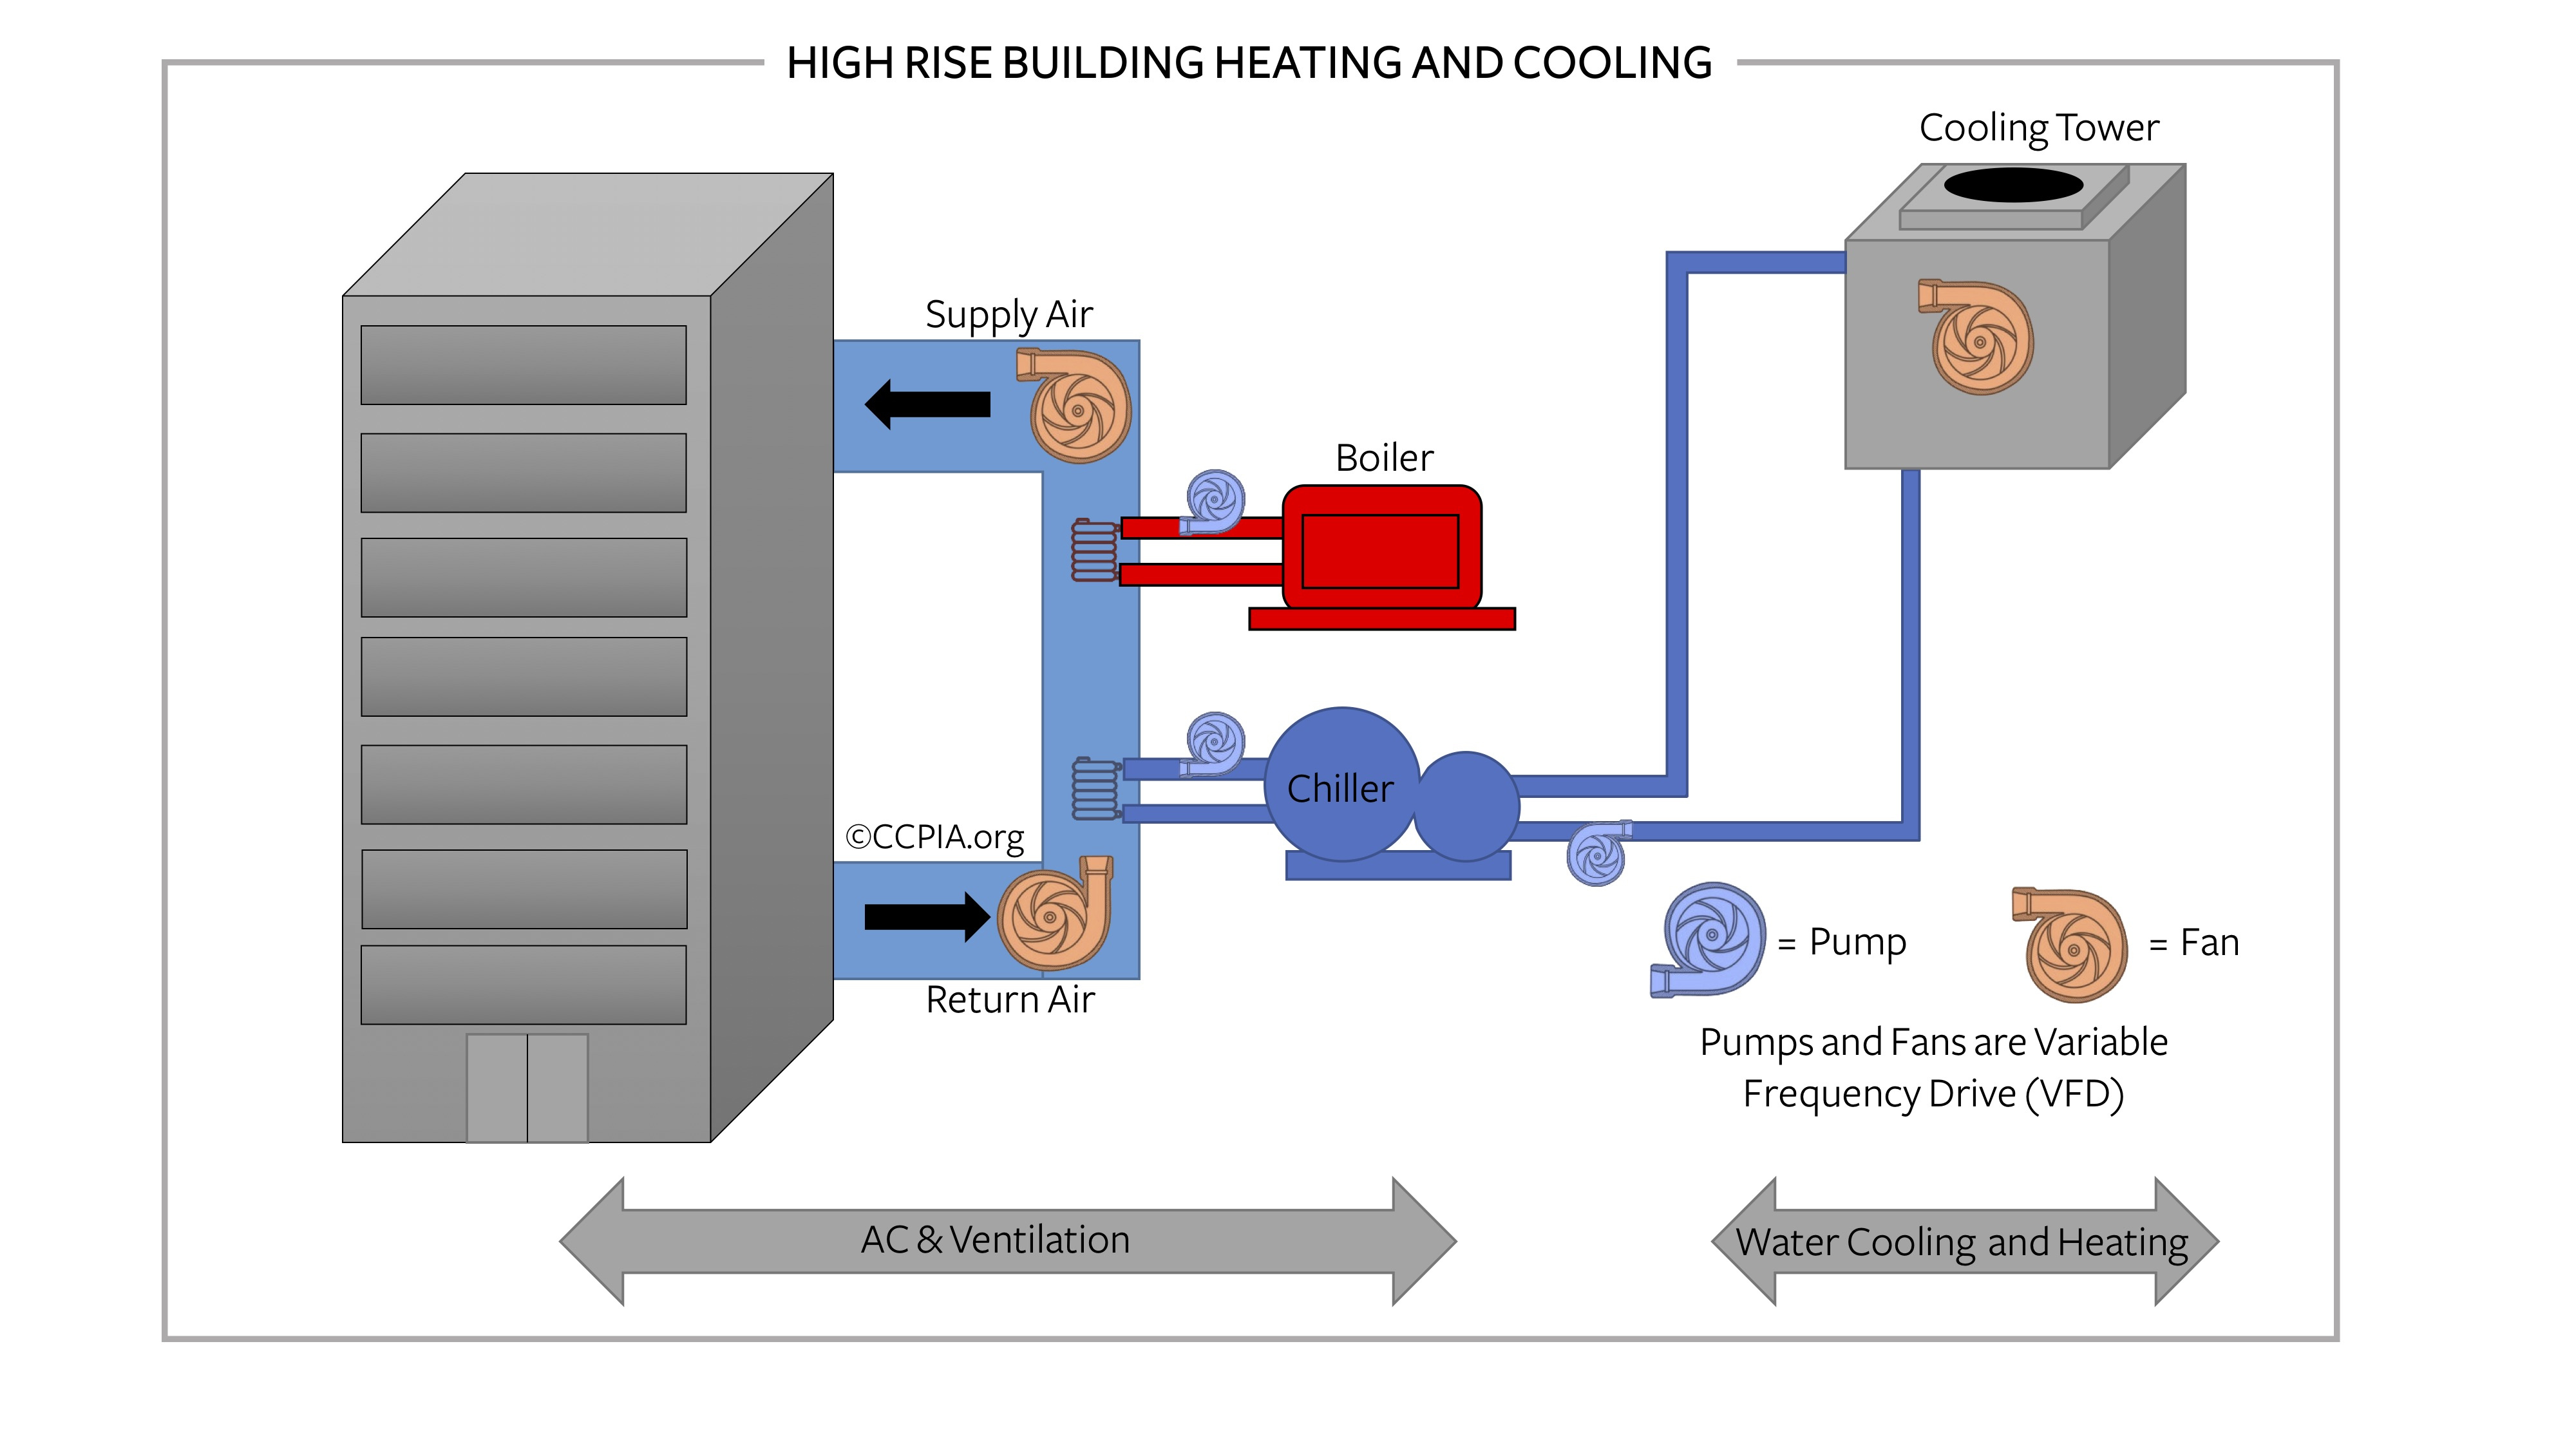 High rise building heating and cooling.